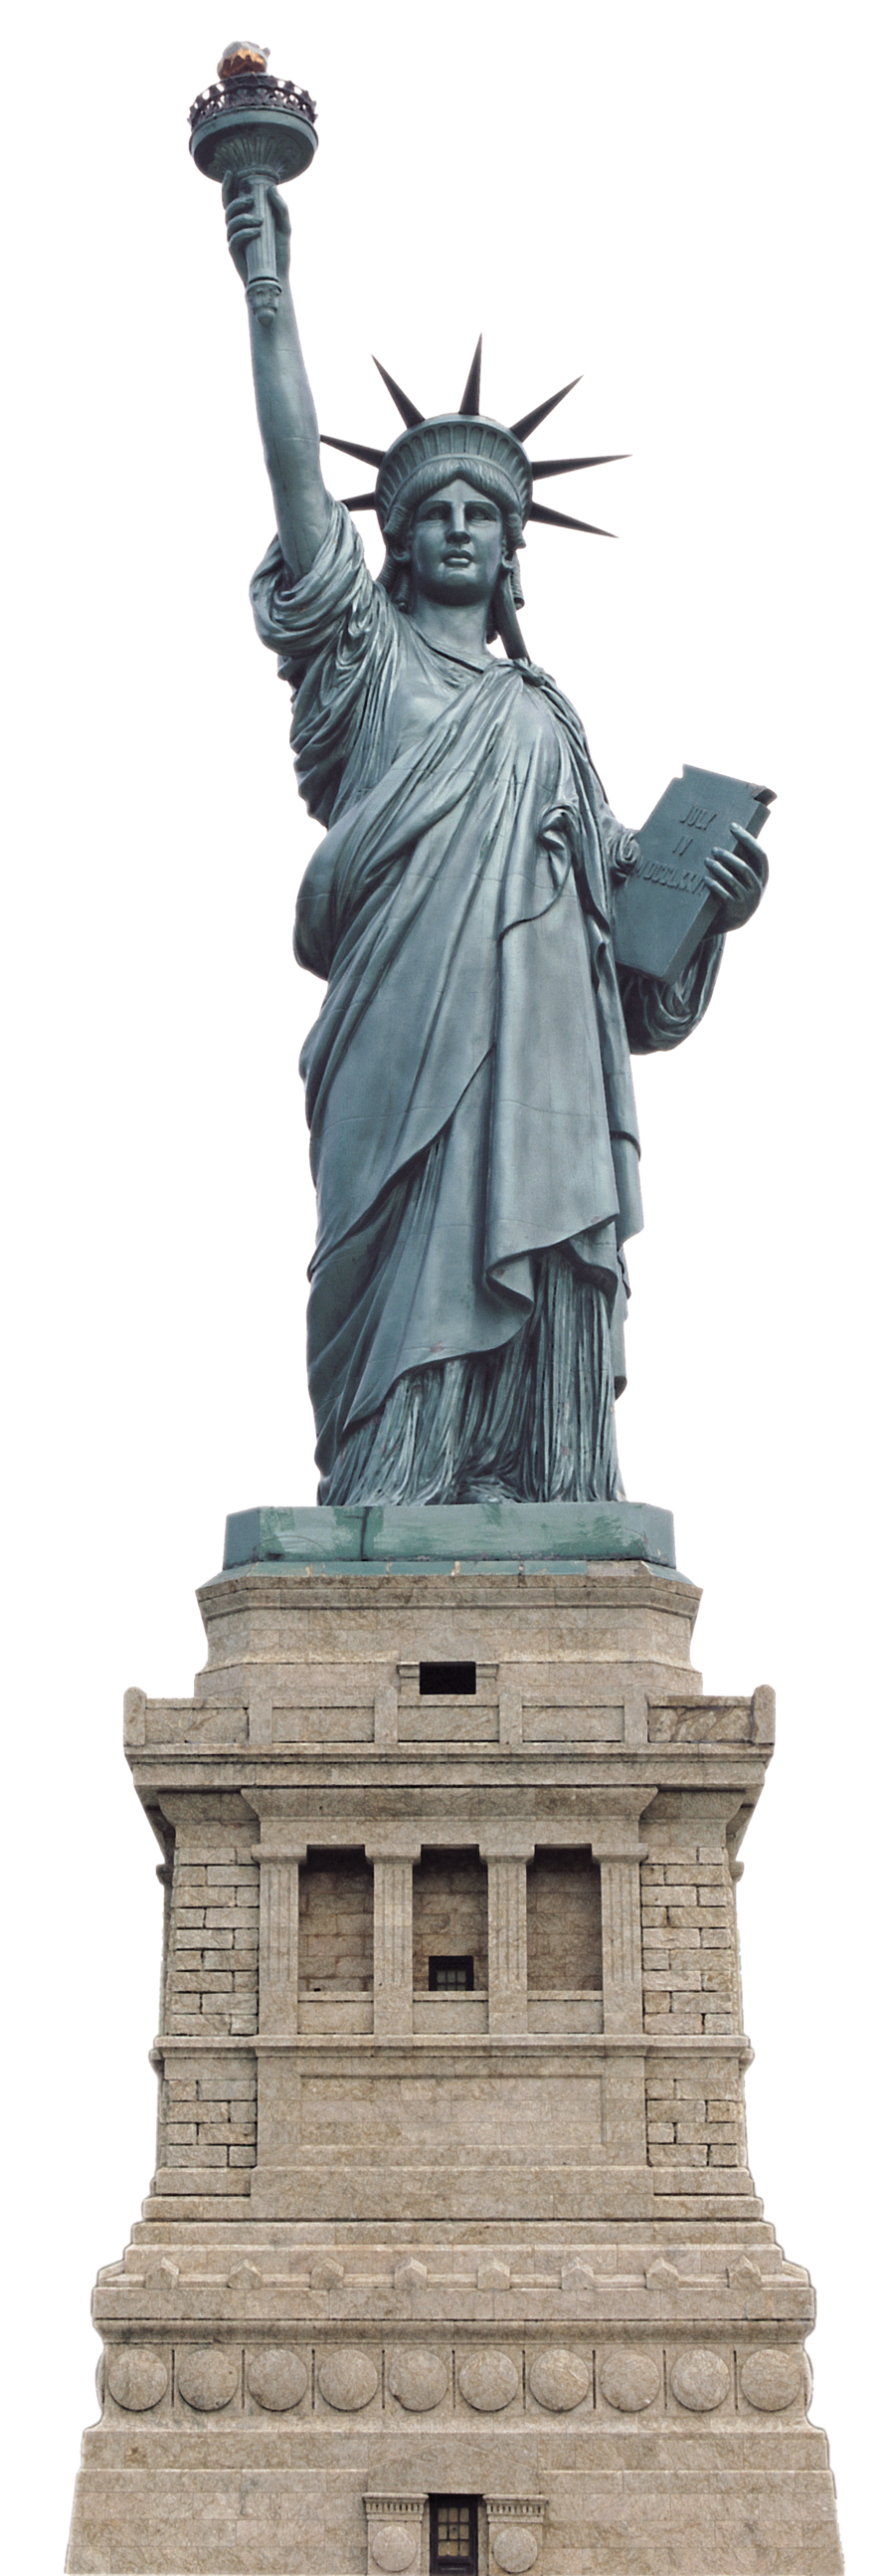 Download Statue Of Liberty Free Download Png Hq Png Image